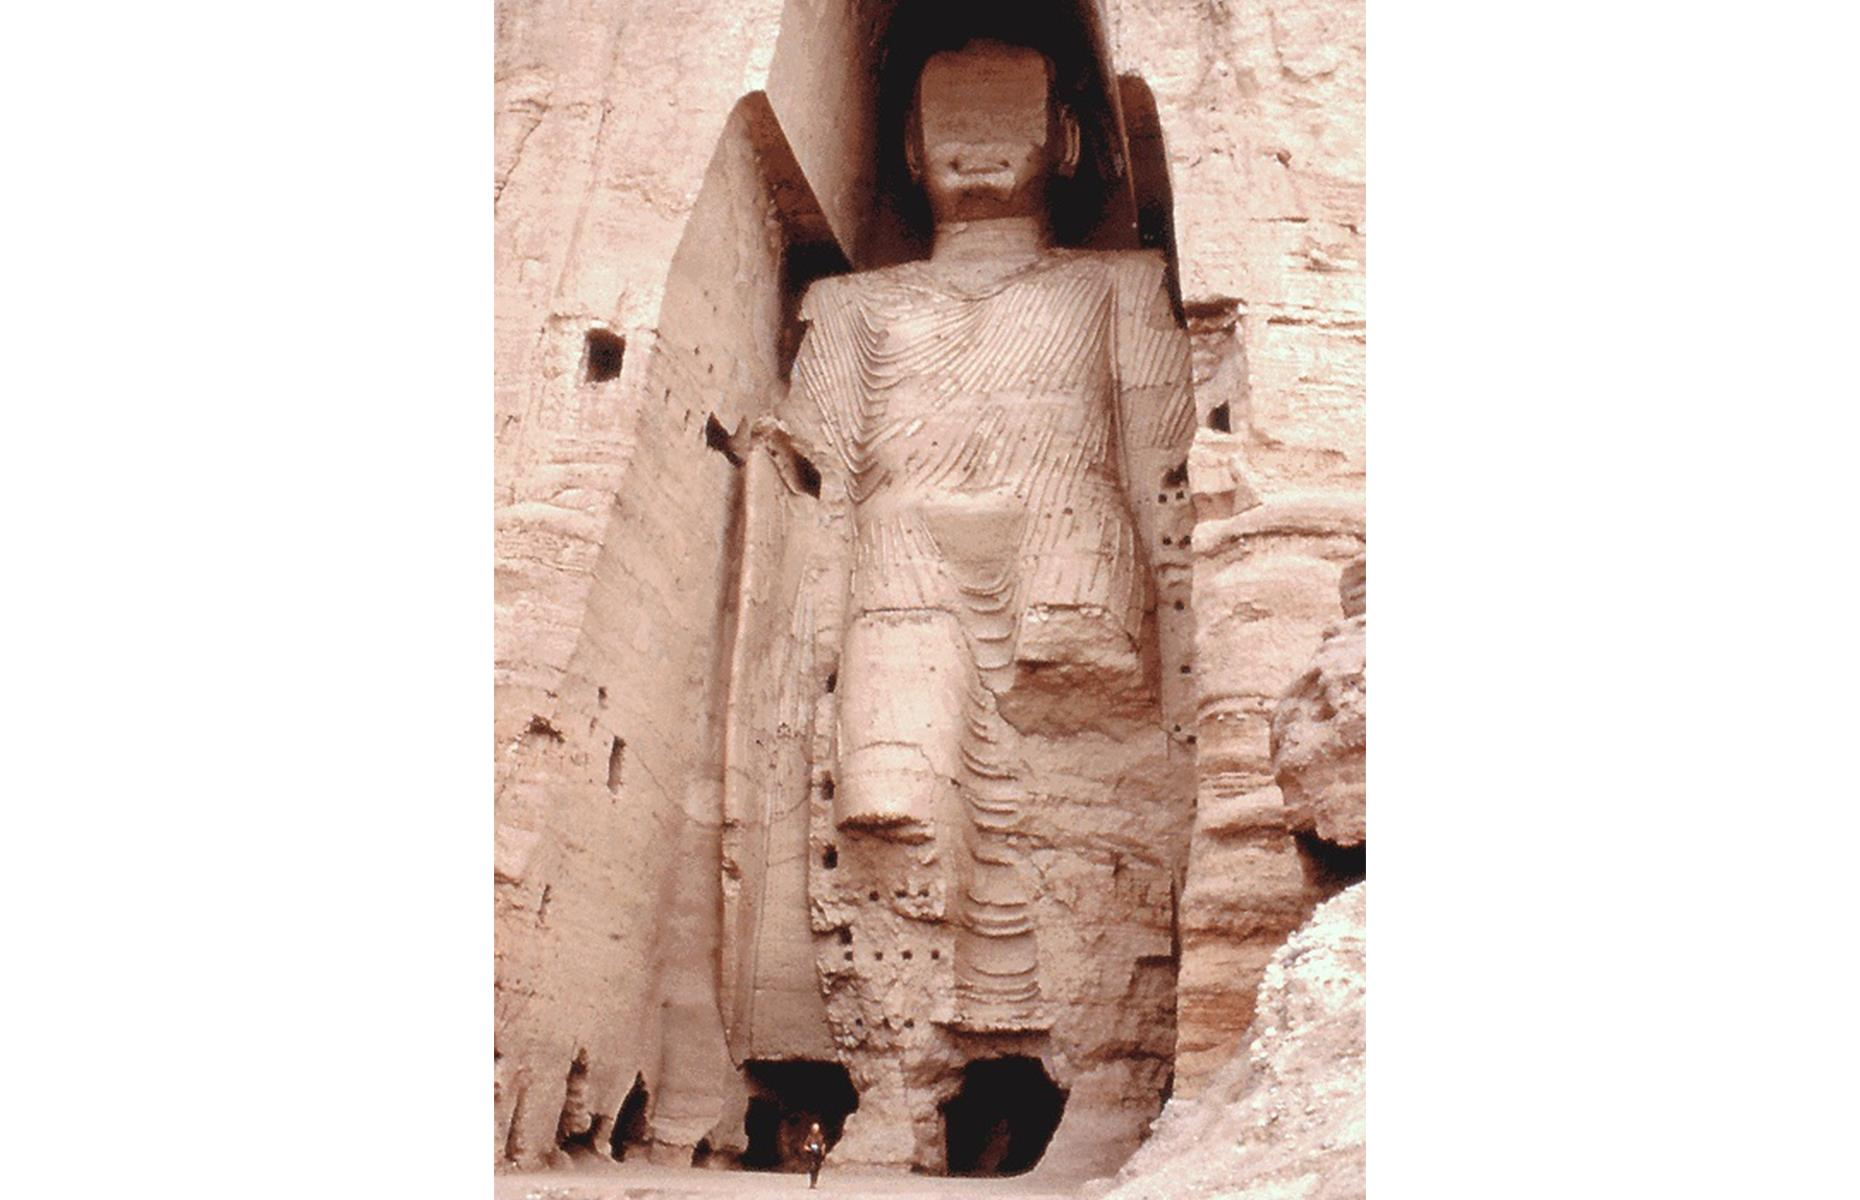 Slide 4 of 39: Two mammoth Buddha statues – the tallest in the world, in fact – once looked out from a sandstone cliffside in Bamiyan. They were carved in the 6th century, with the tallest topping out at 180 feet (55m). But, in 2001, these Buddhist effigies were destroyed by the Taliban.